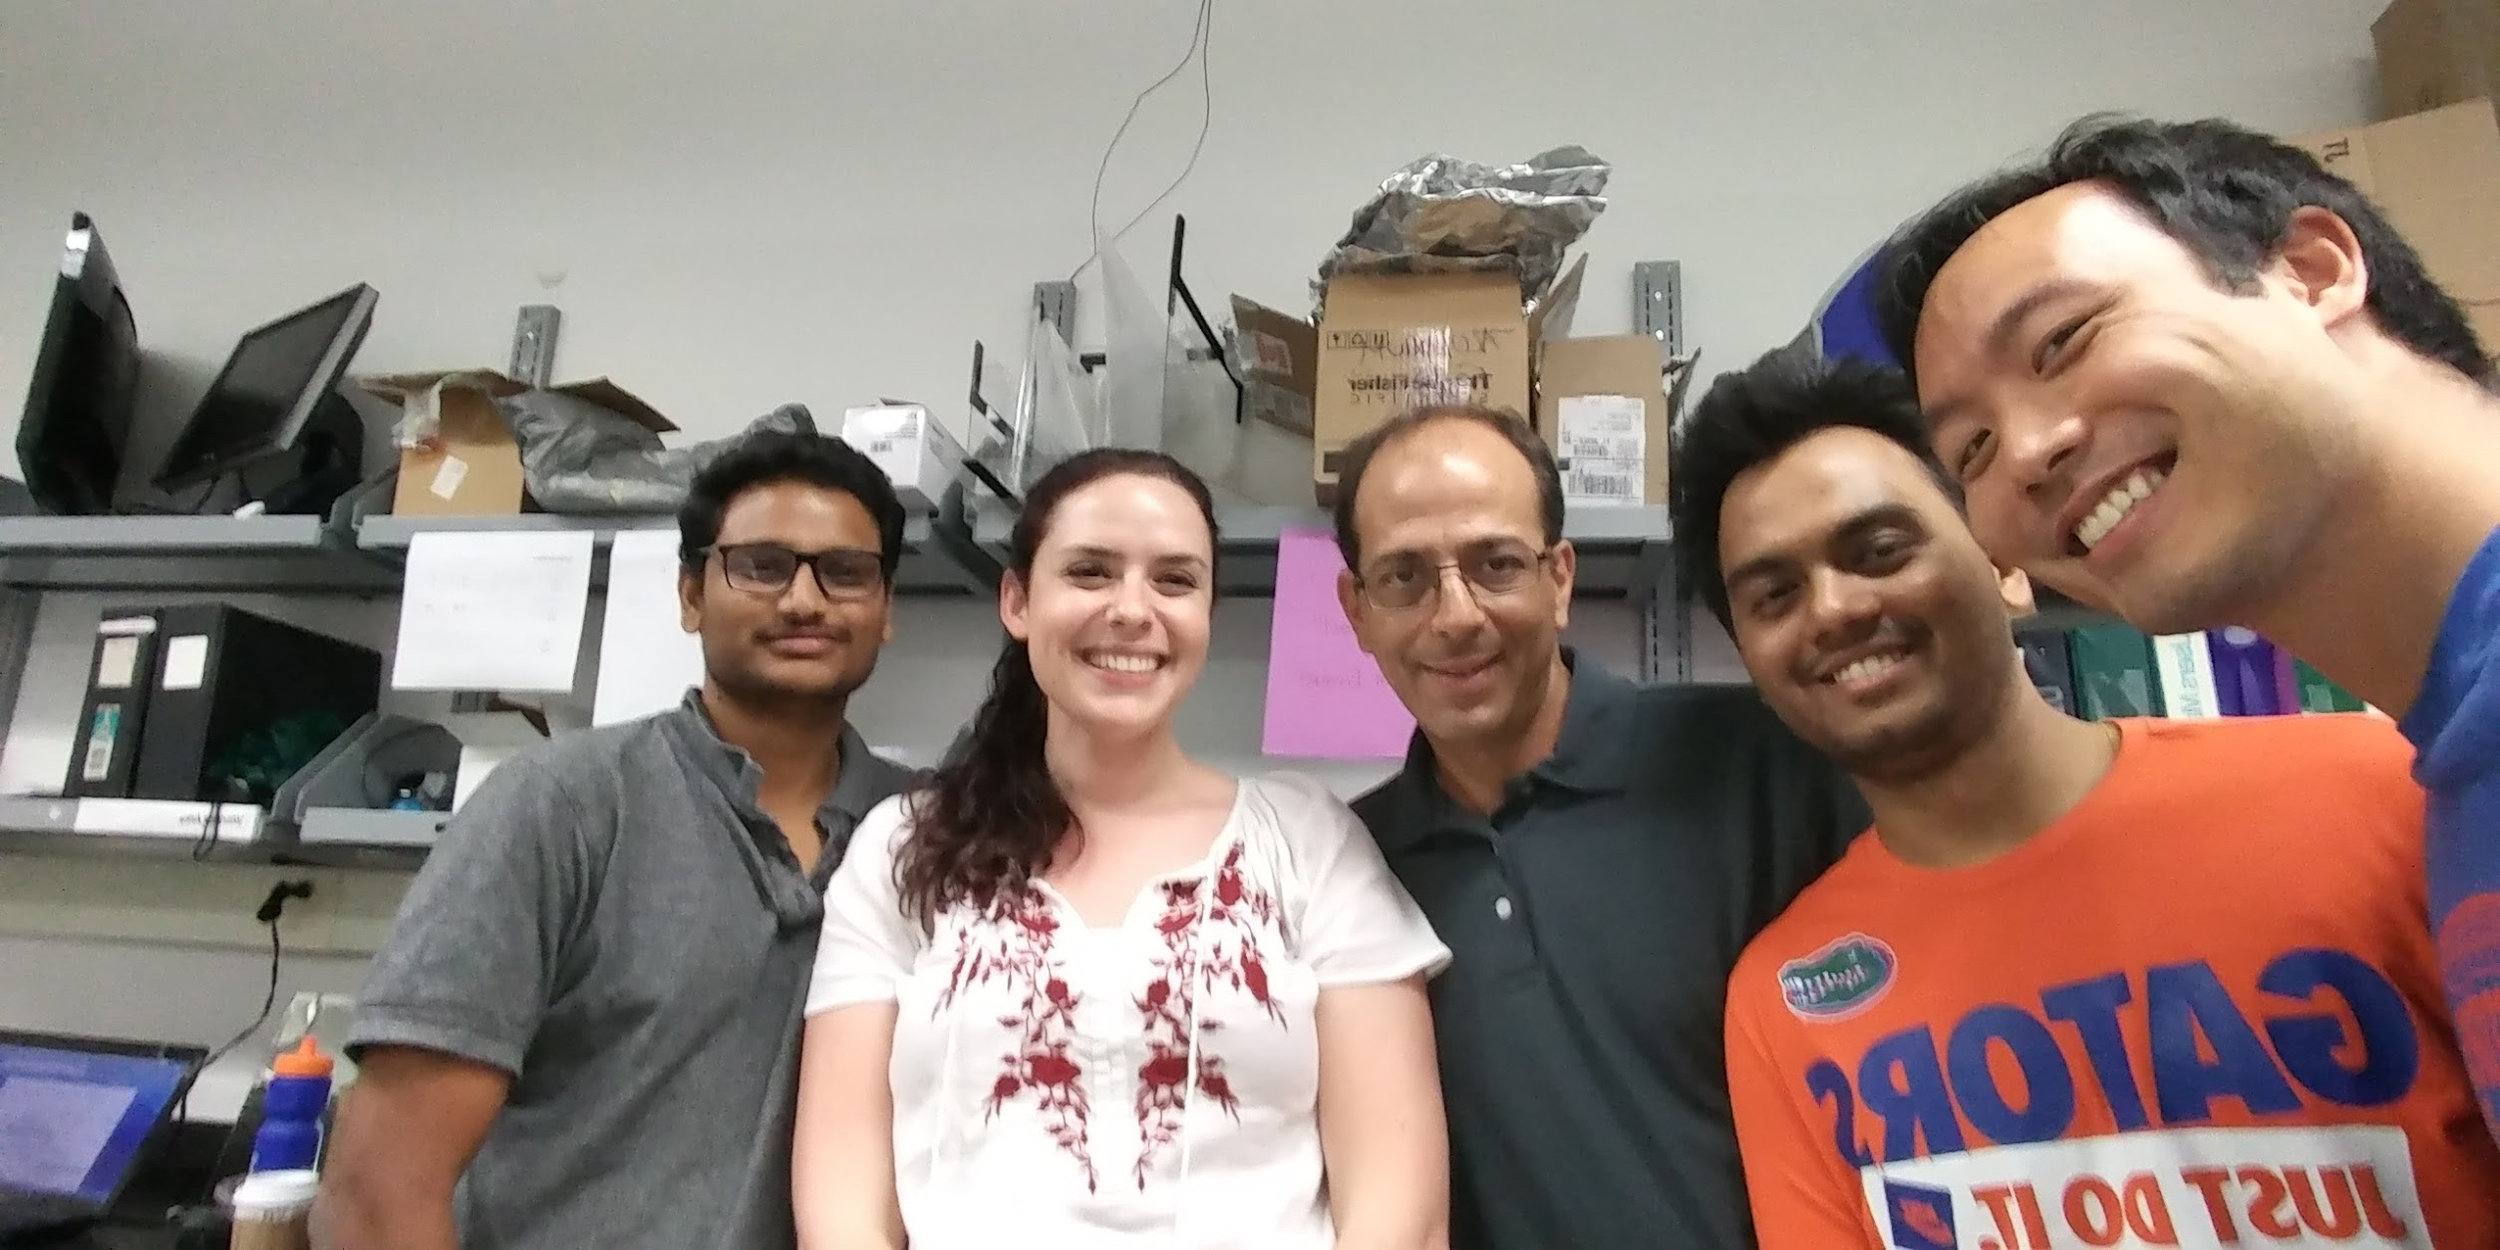 Rachael visited Prof. Jason Weaver's group at The University of Florida for two weeks in June 2017.